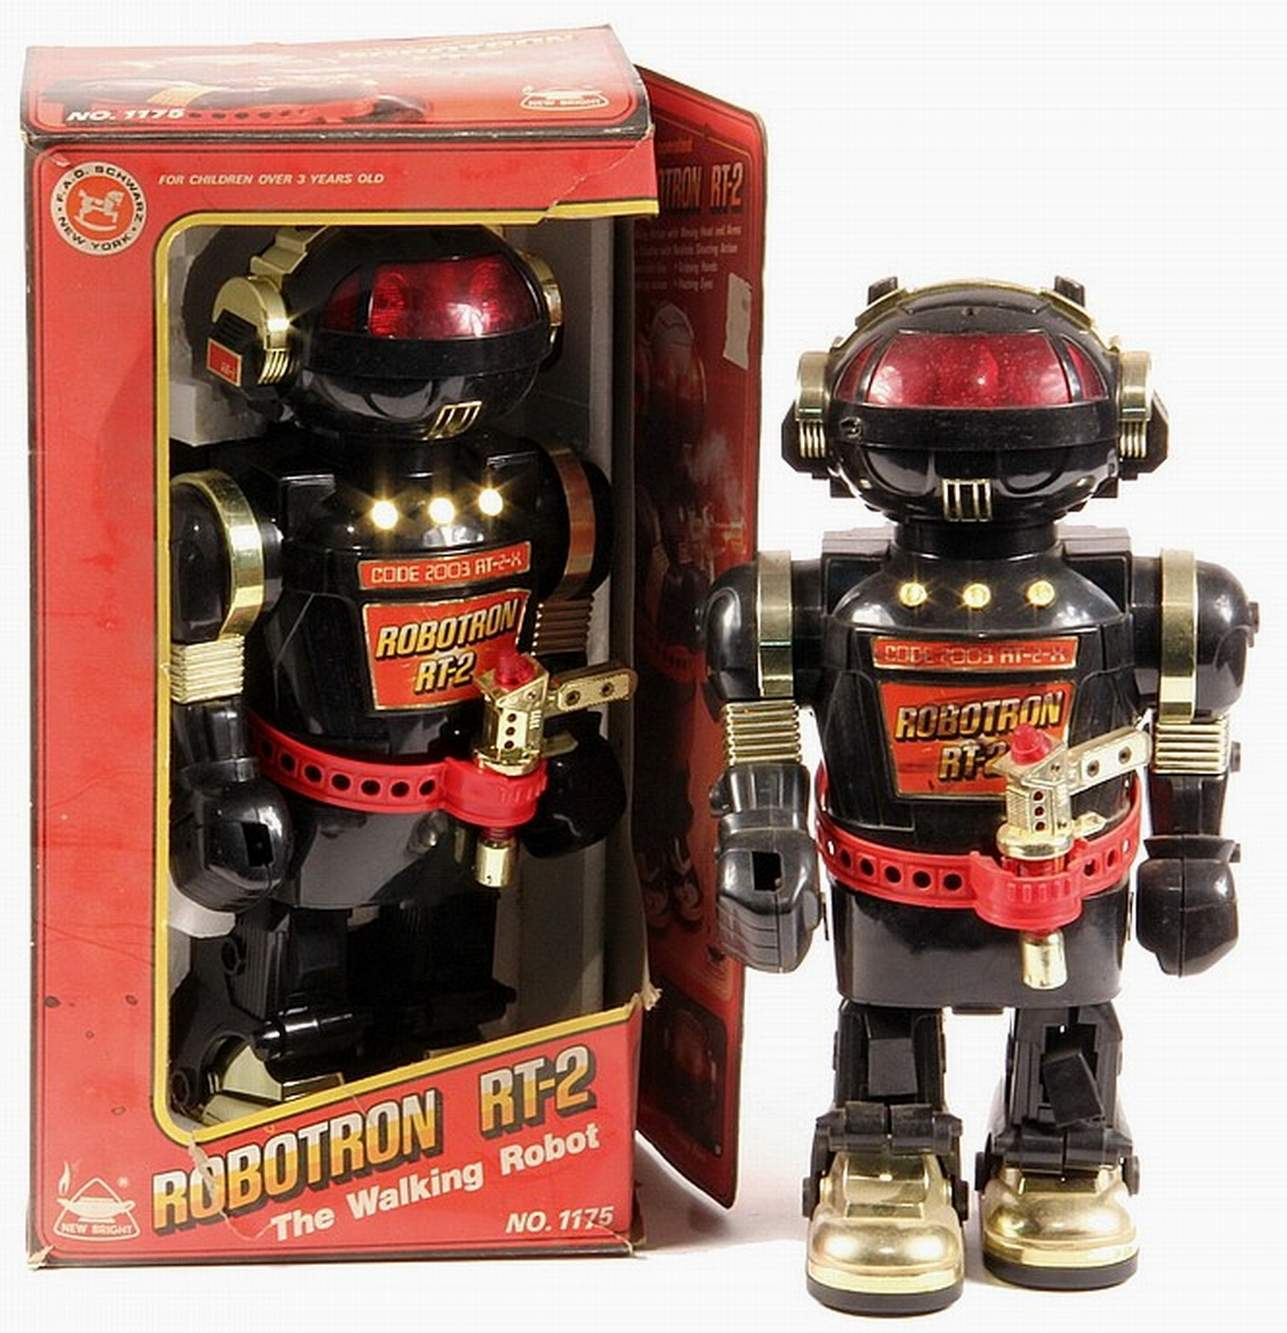 Robotron Robot by New Bright